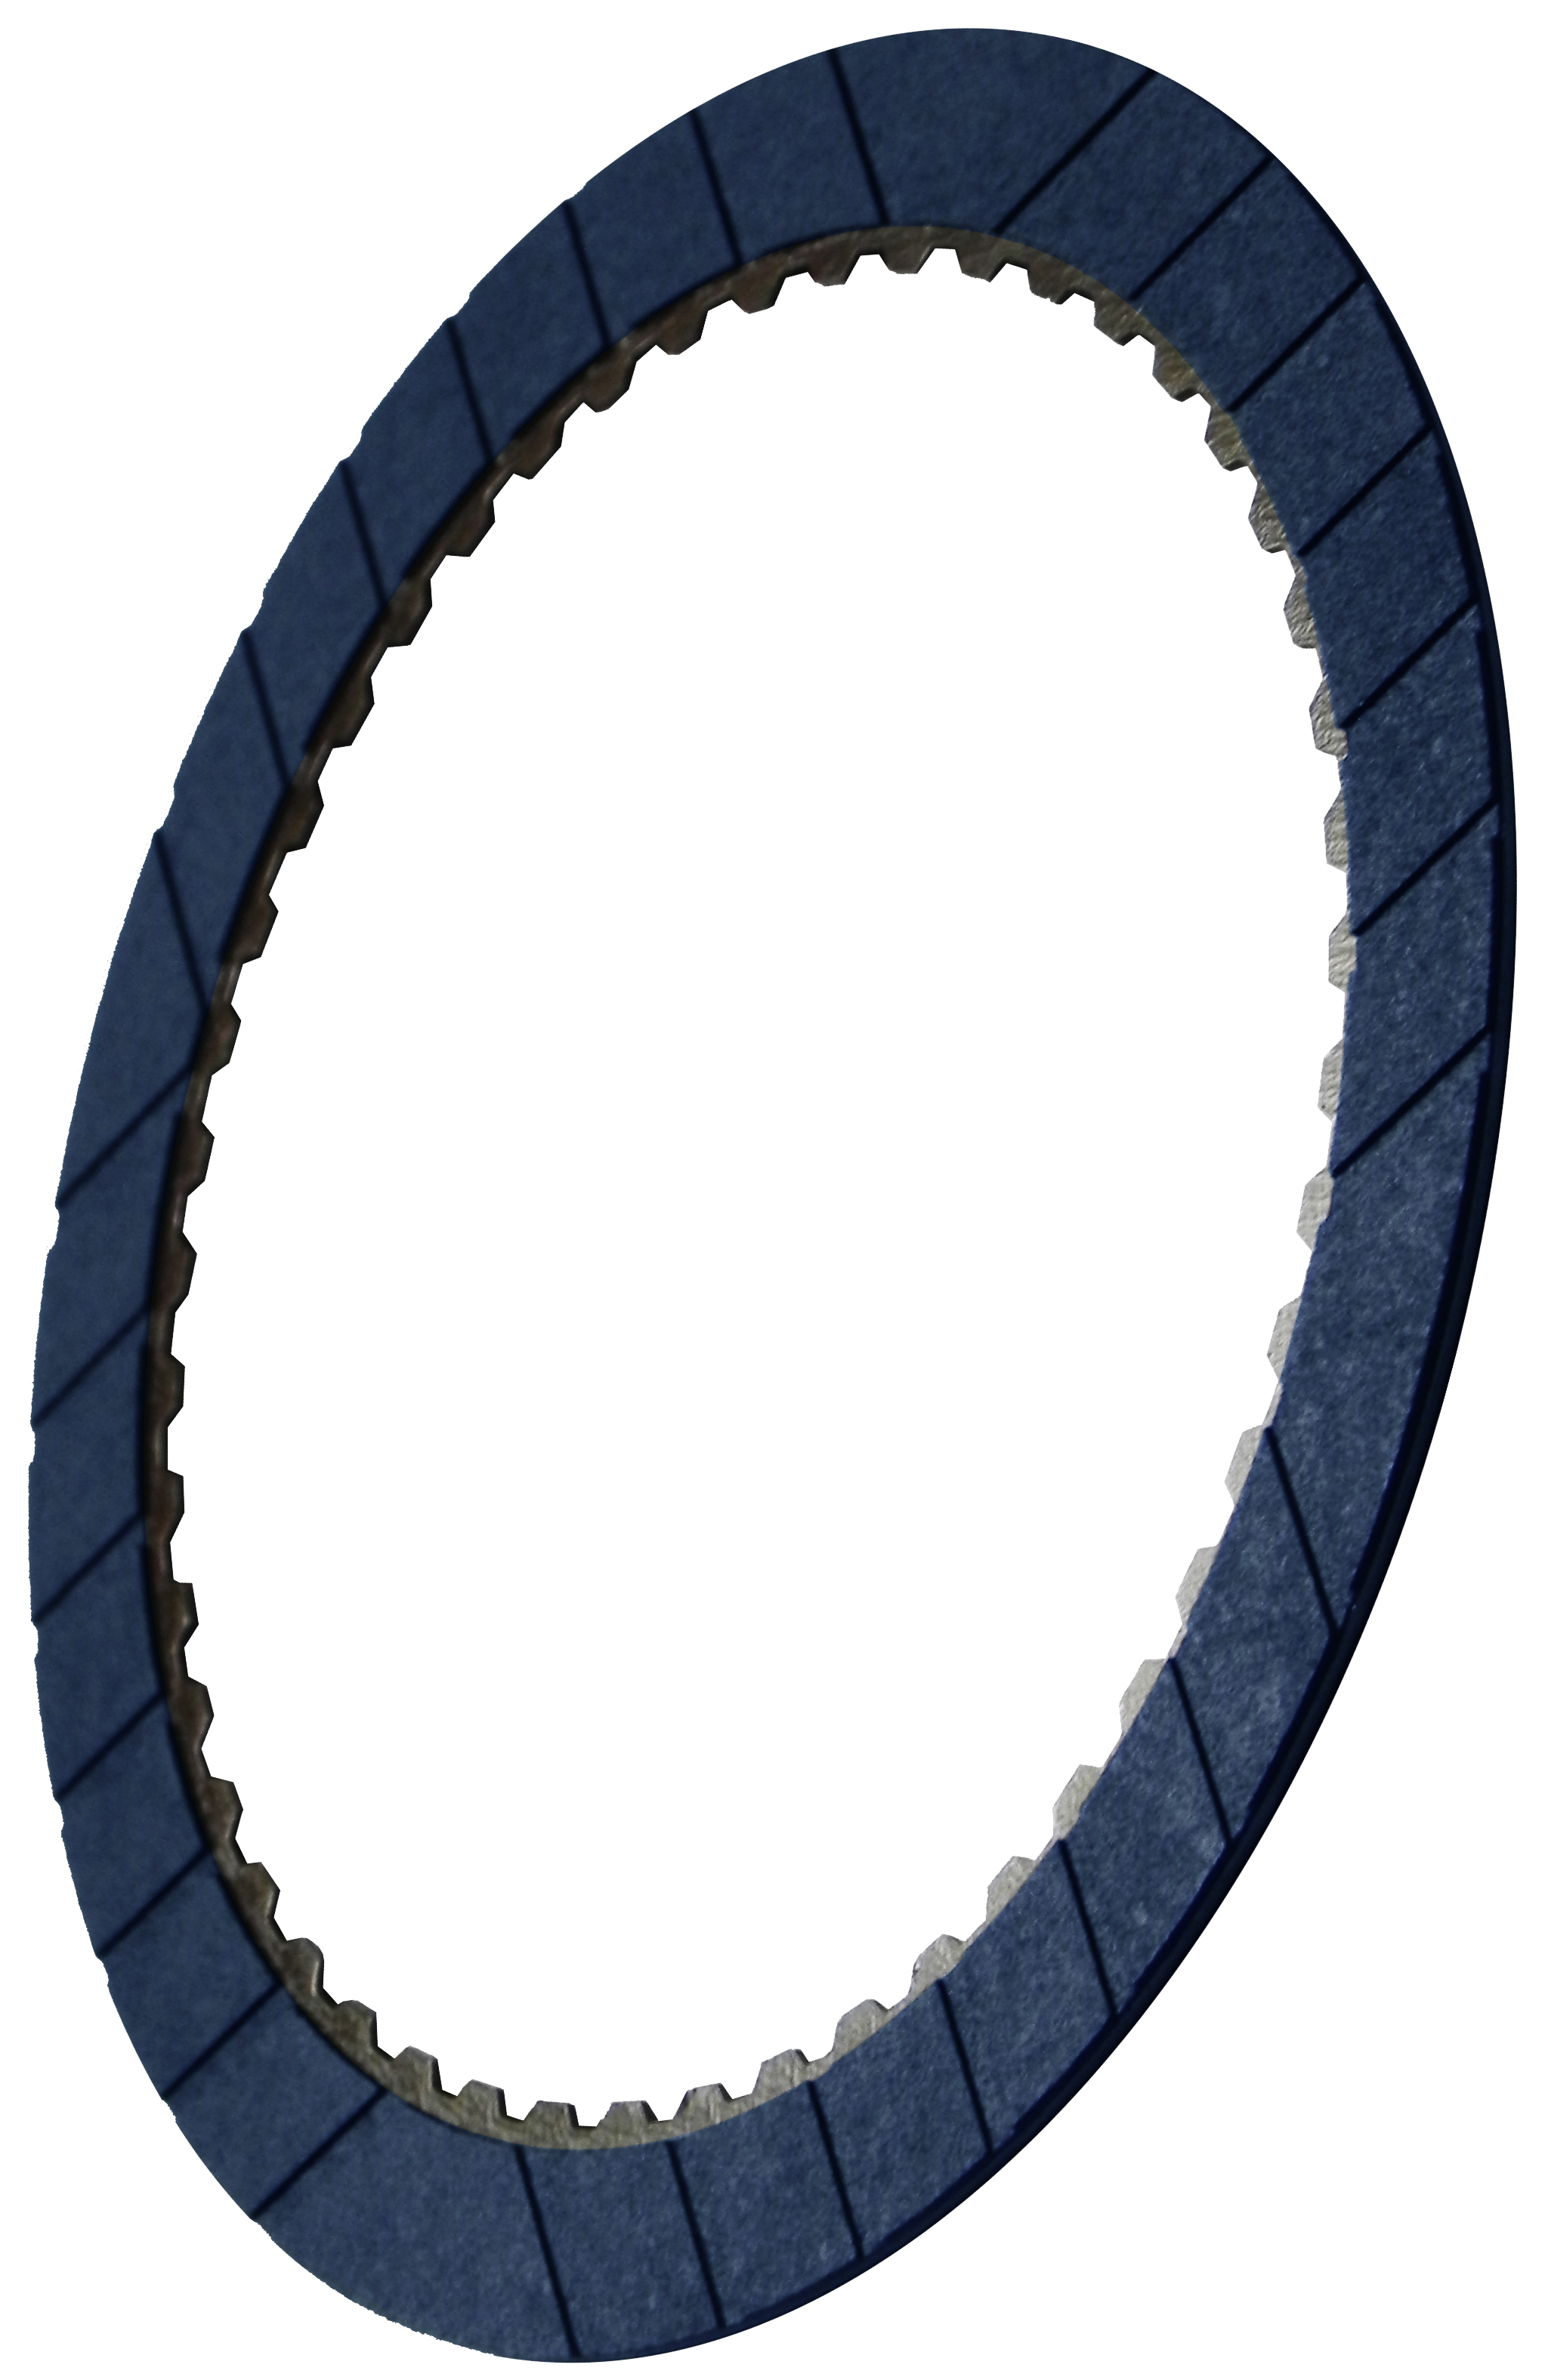 R577477 | 2005-ON Friction Clutch Plate GEN 2, Blue Plate Special Direct GEN 2 5R55S